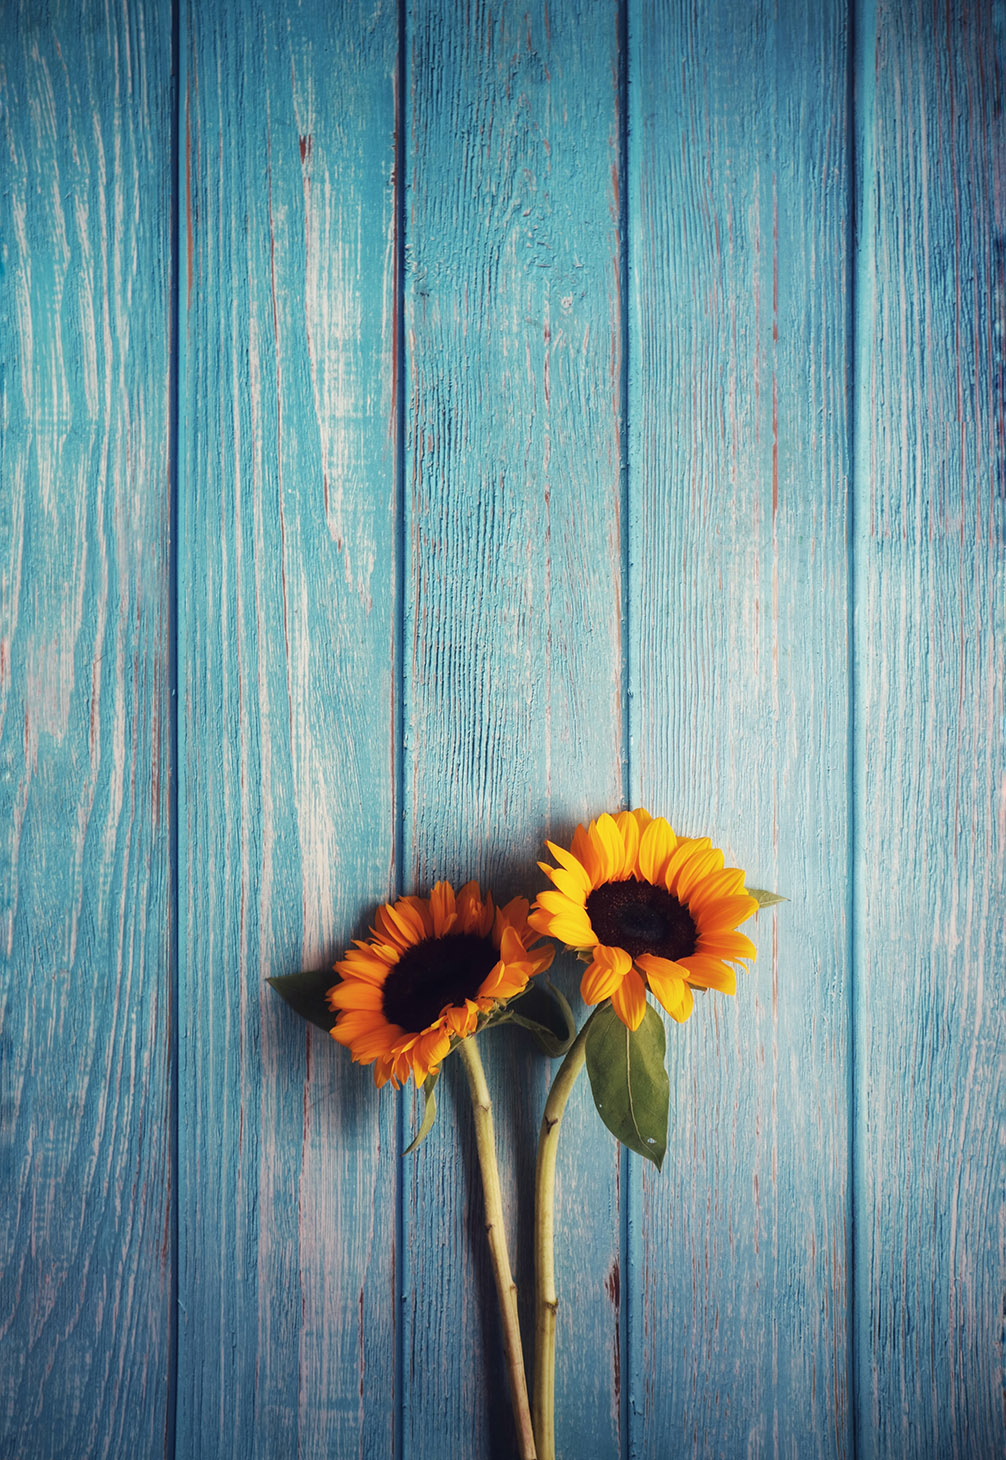 two sunflowers on a blue wood background